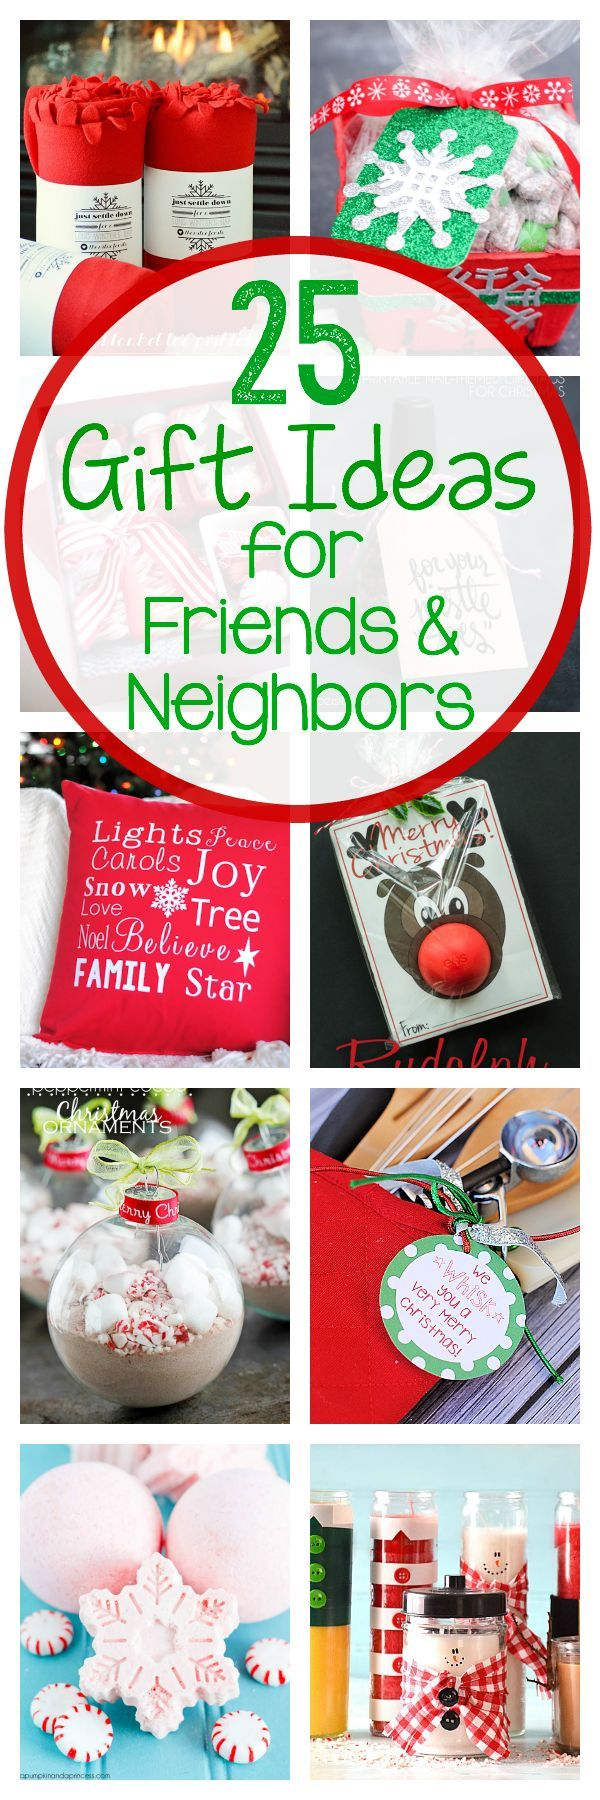 43 best images about gift ideas christmas on pinterest for Great gifts for neighbors on the holiday